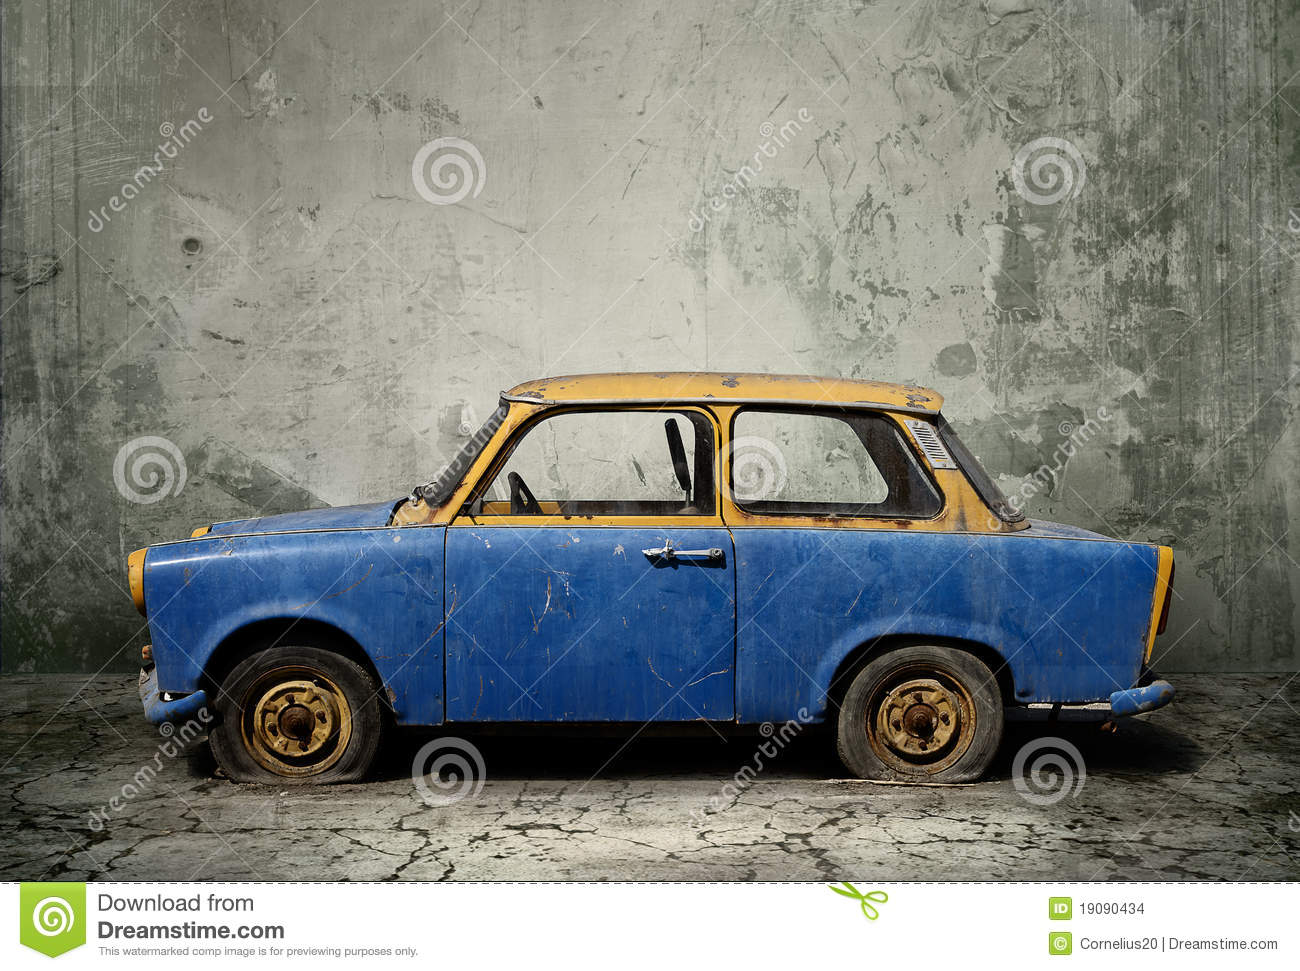 Old Rusty Car Stock Photo. Image Of Corrosion, Ground